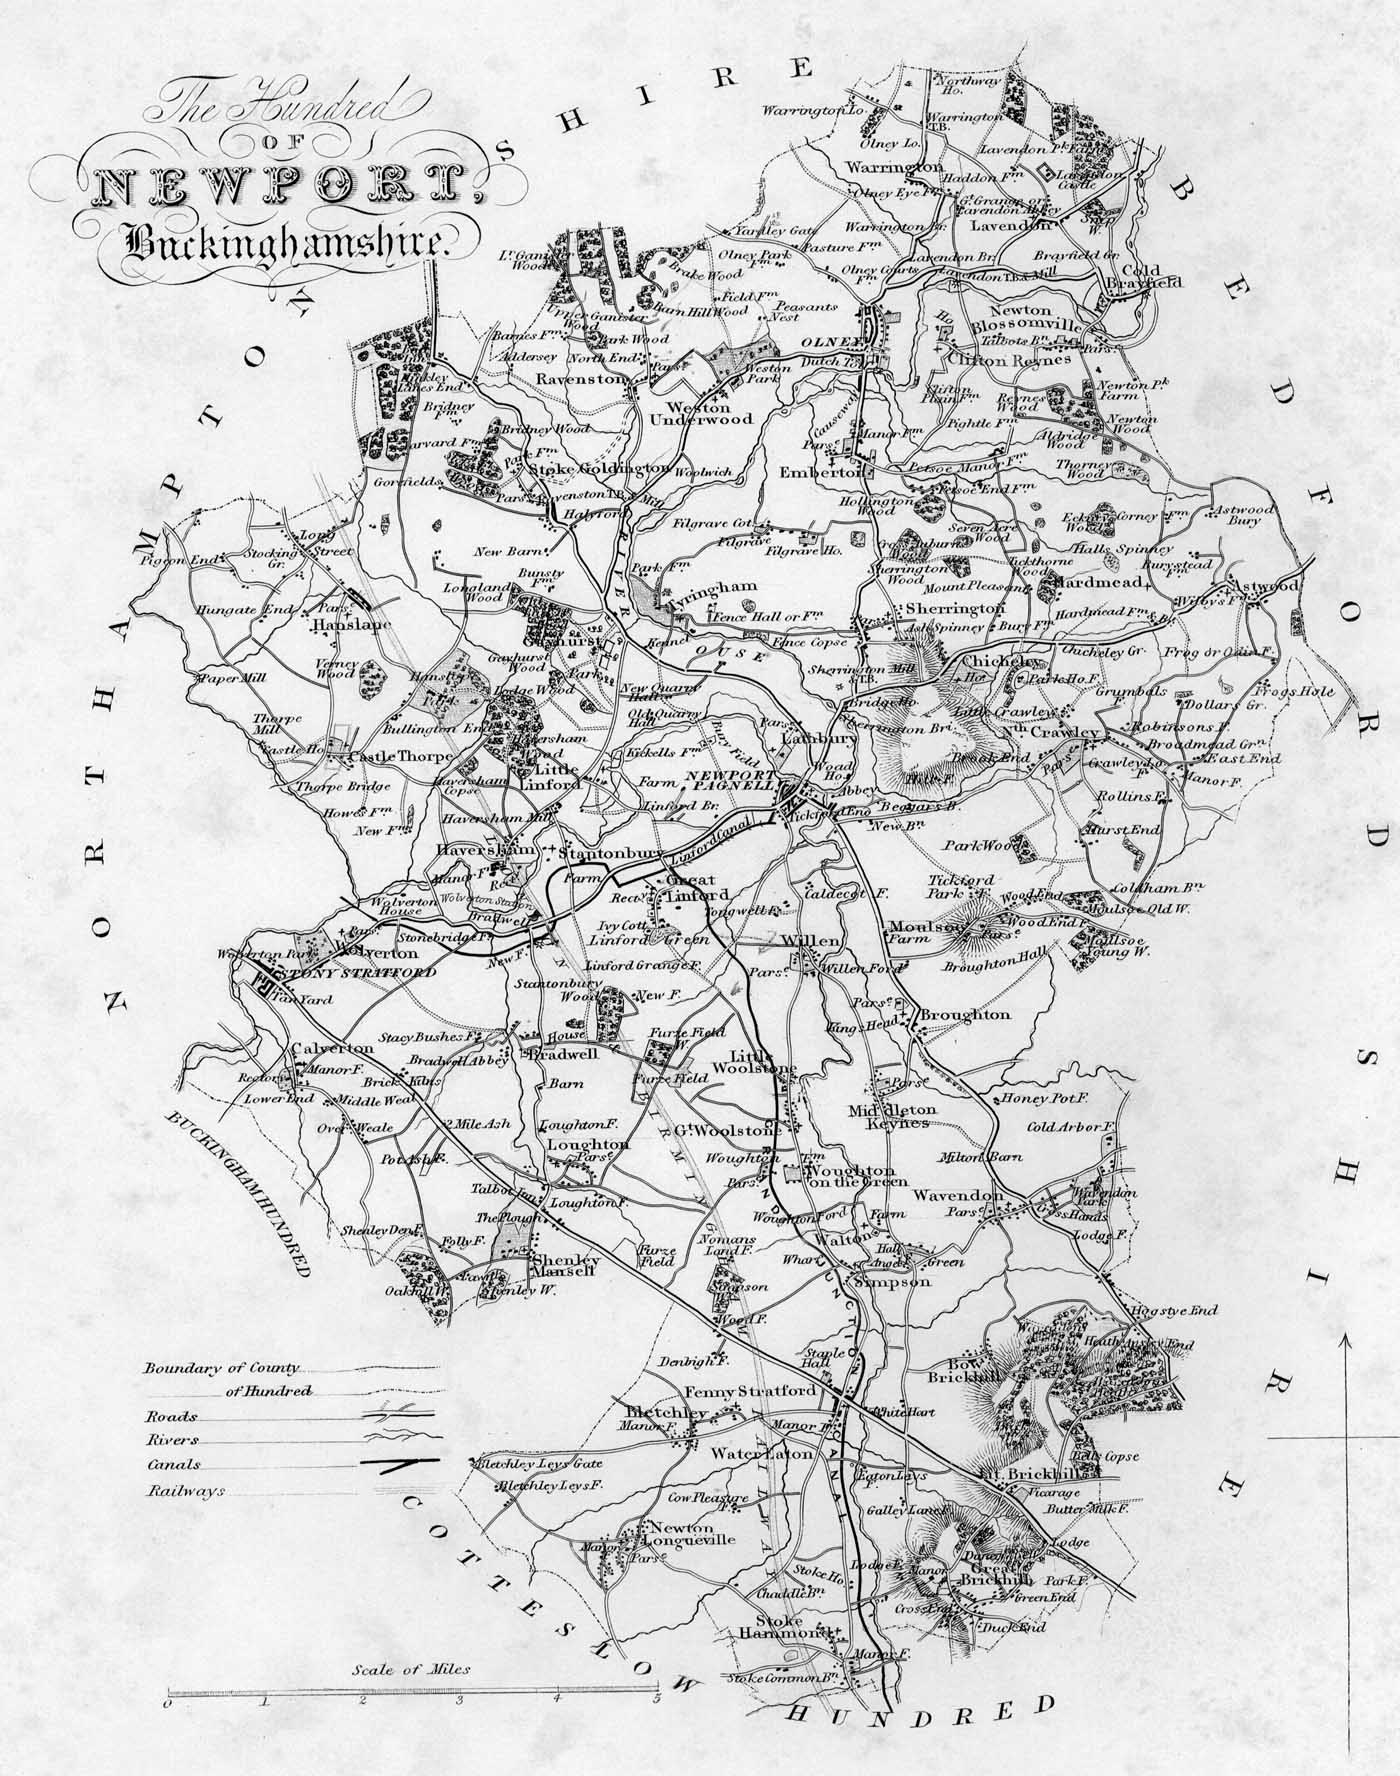 Map of Newport Hundred